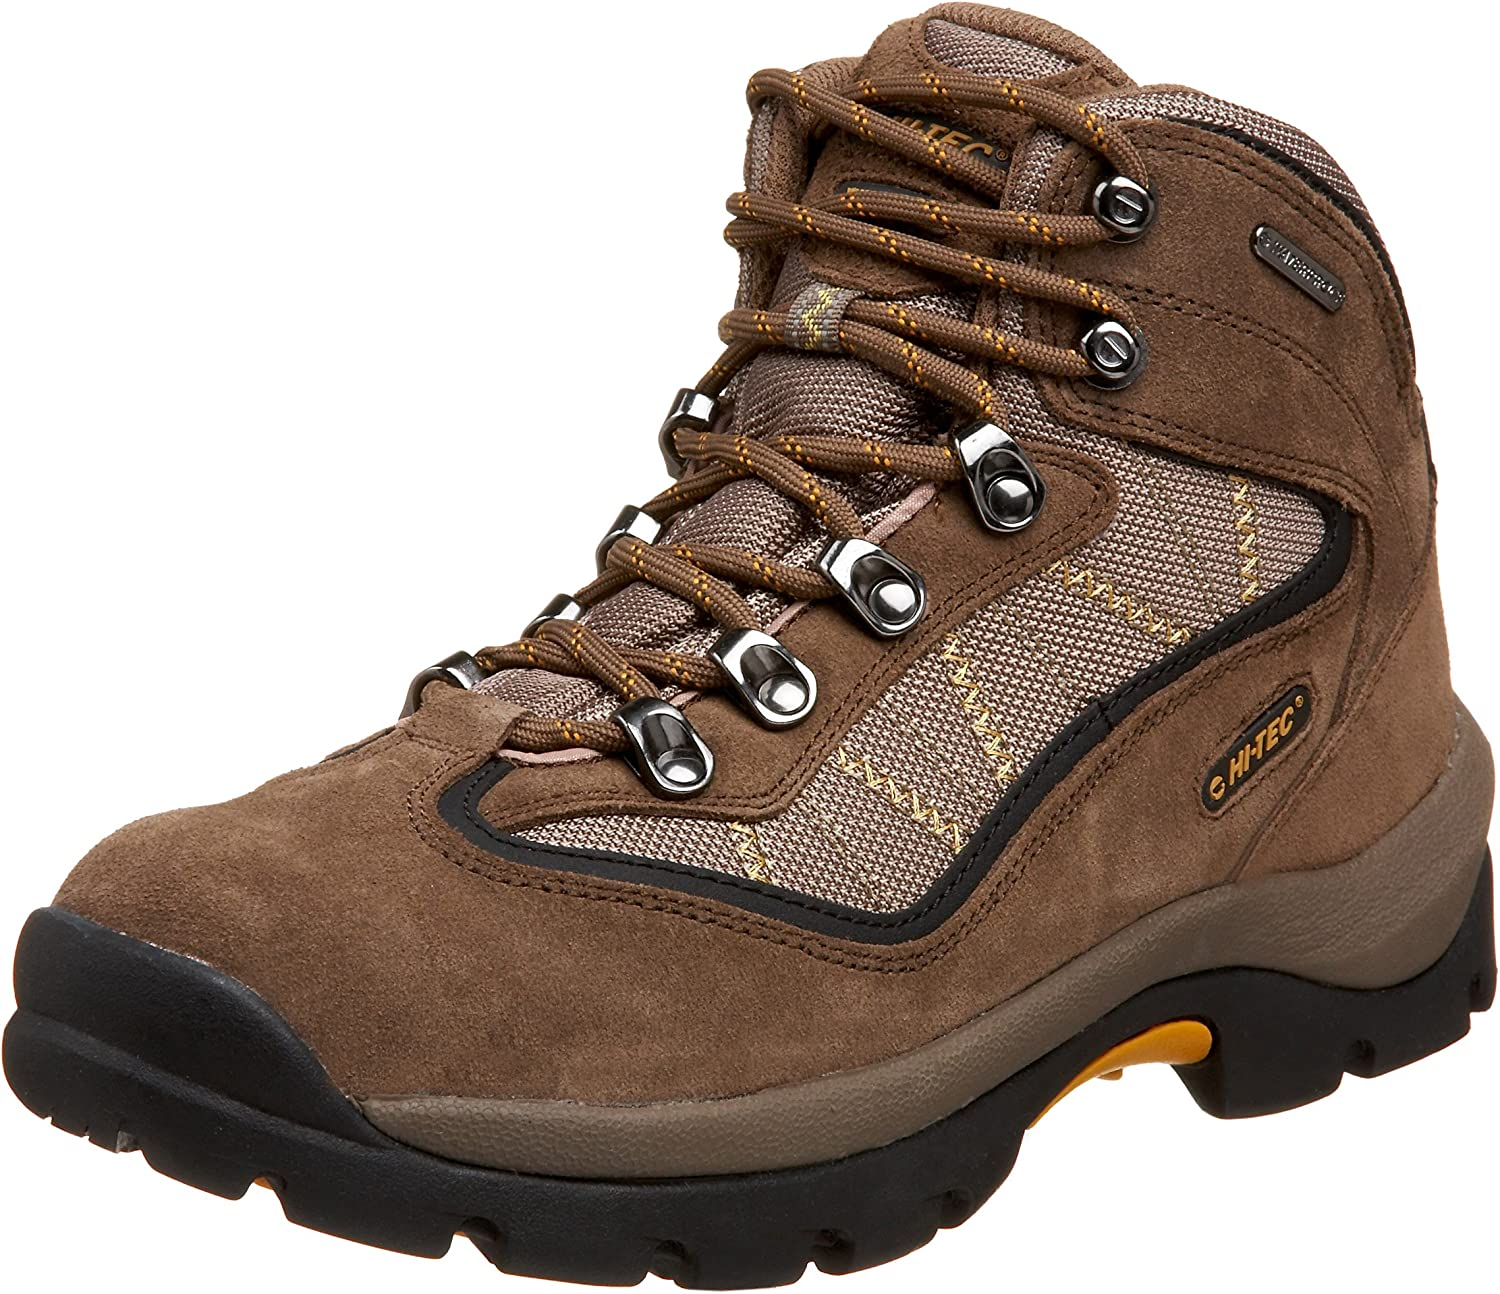 Hi-Tec Men's Cape Trail II WP Light Hiking shoes